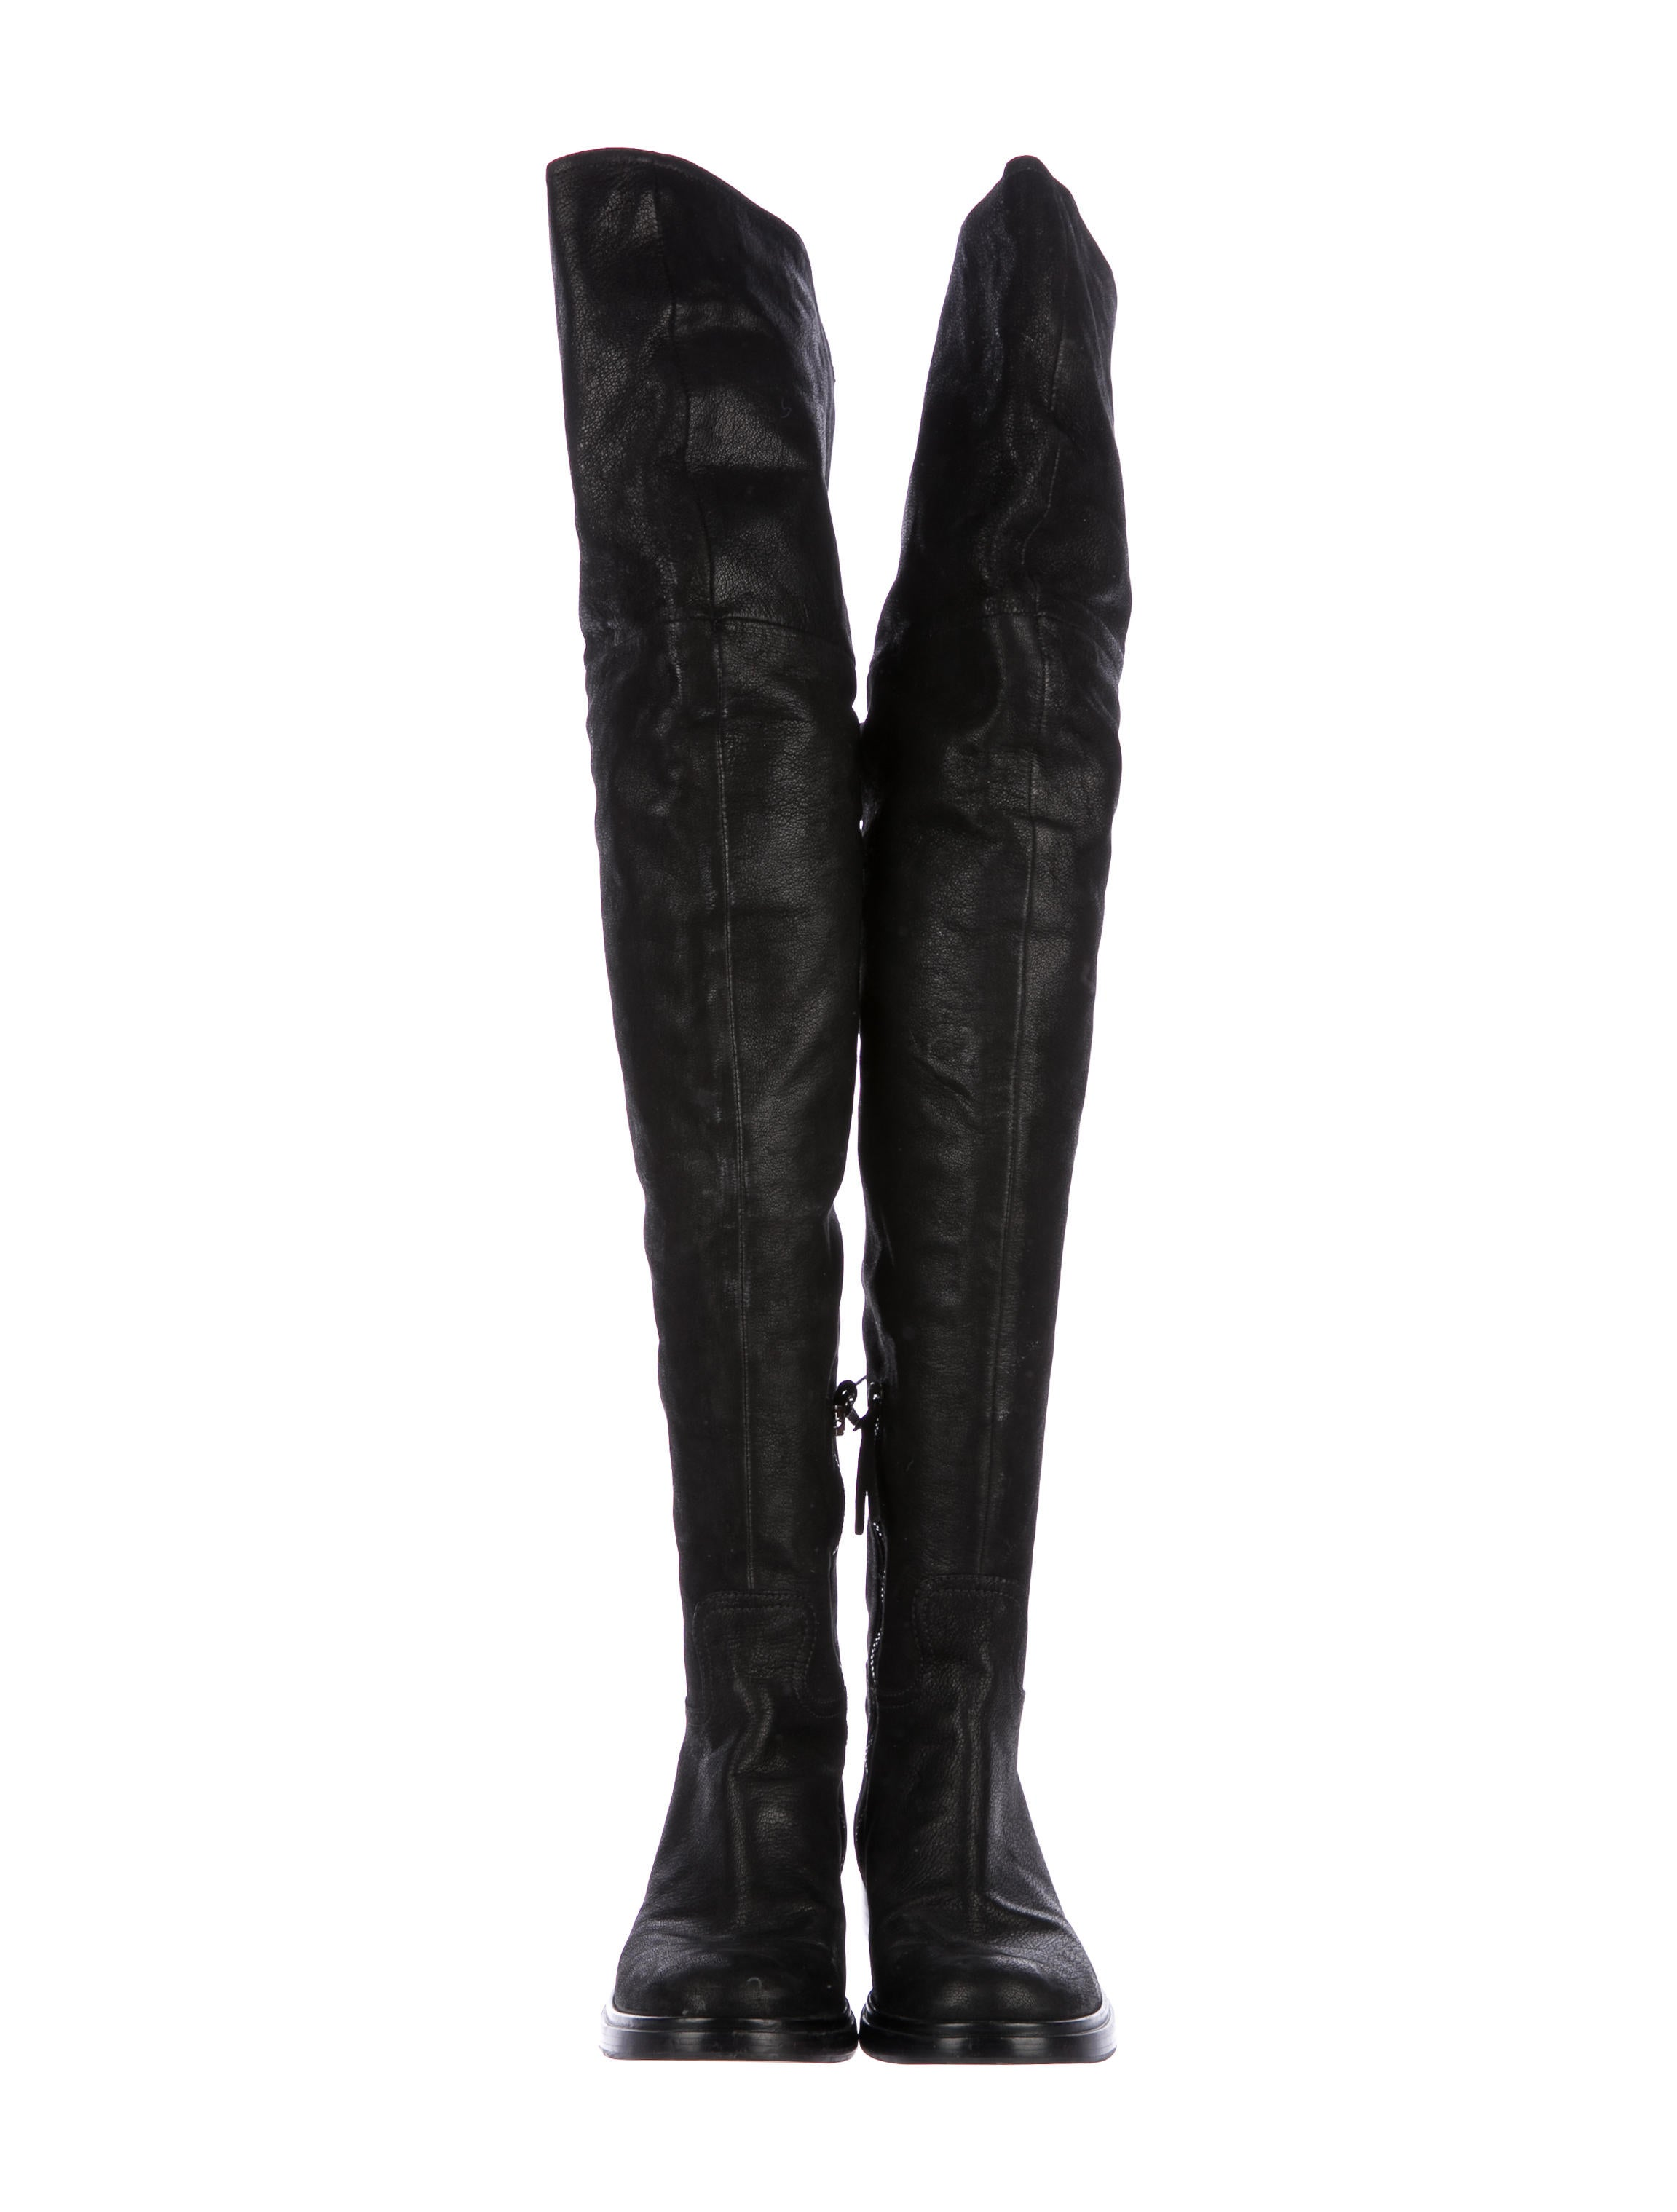 Miu Miu Thigh-High Whipstitch Boots